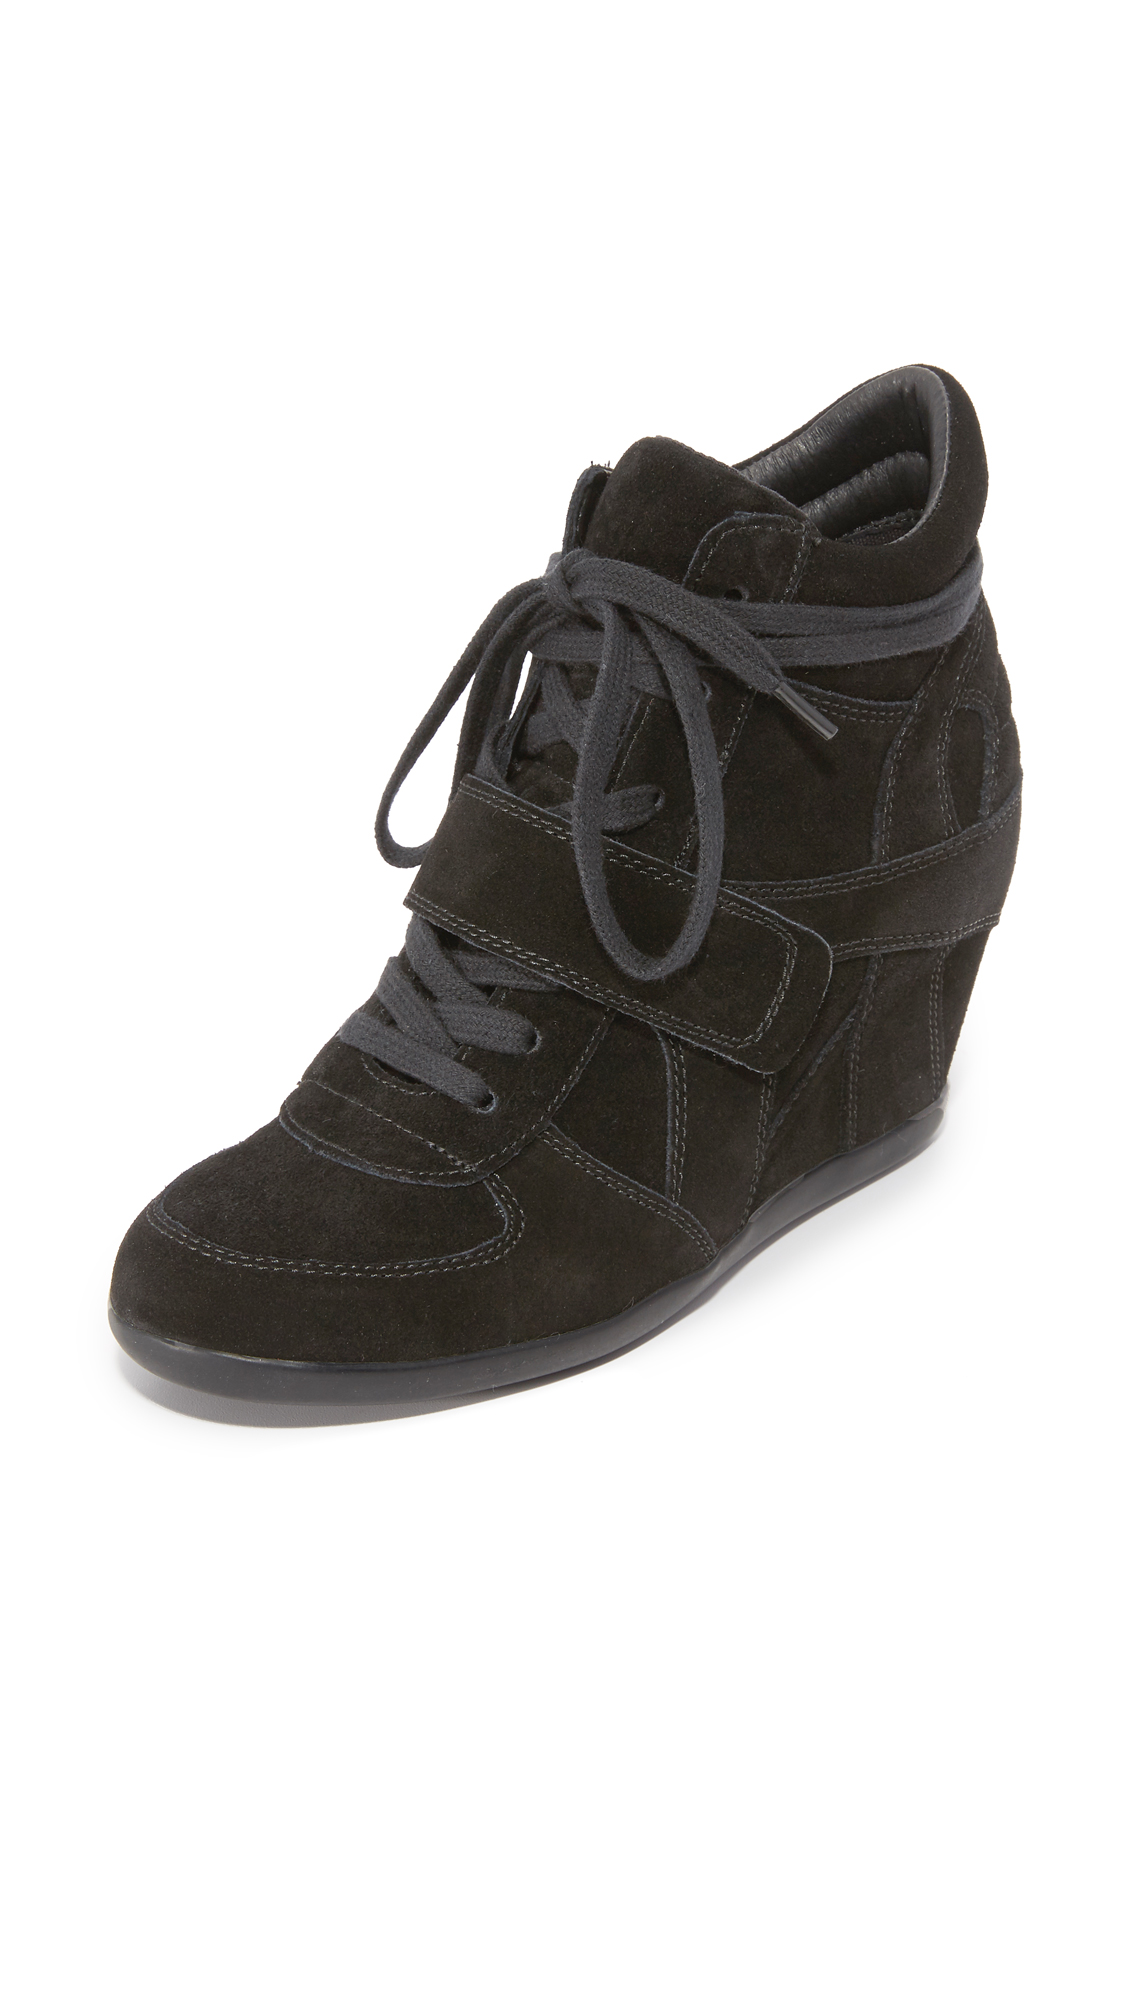 Ash Bowie Wedge Sneakers - Black